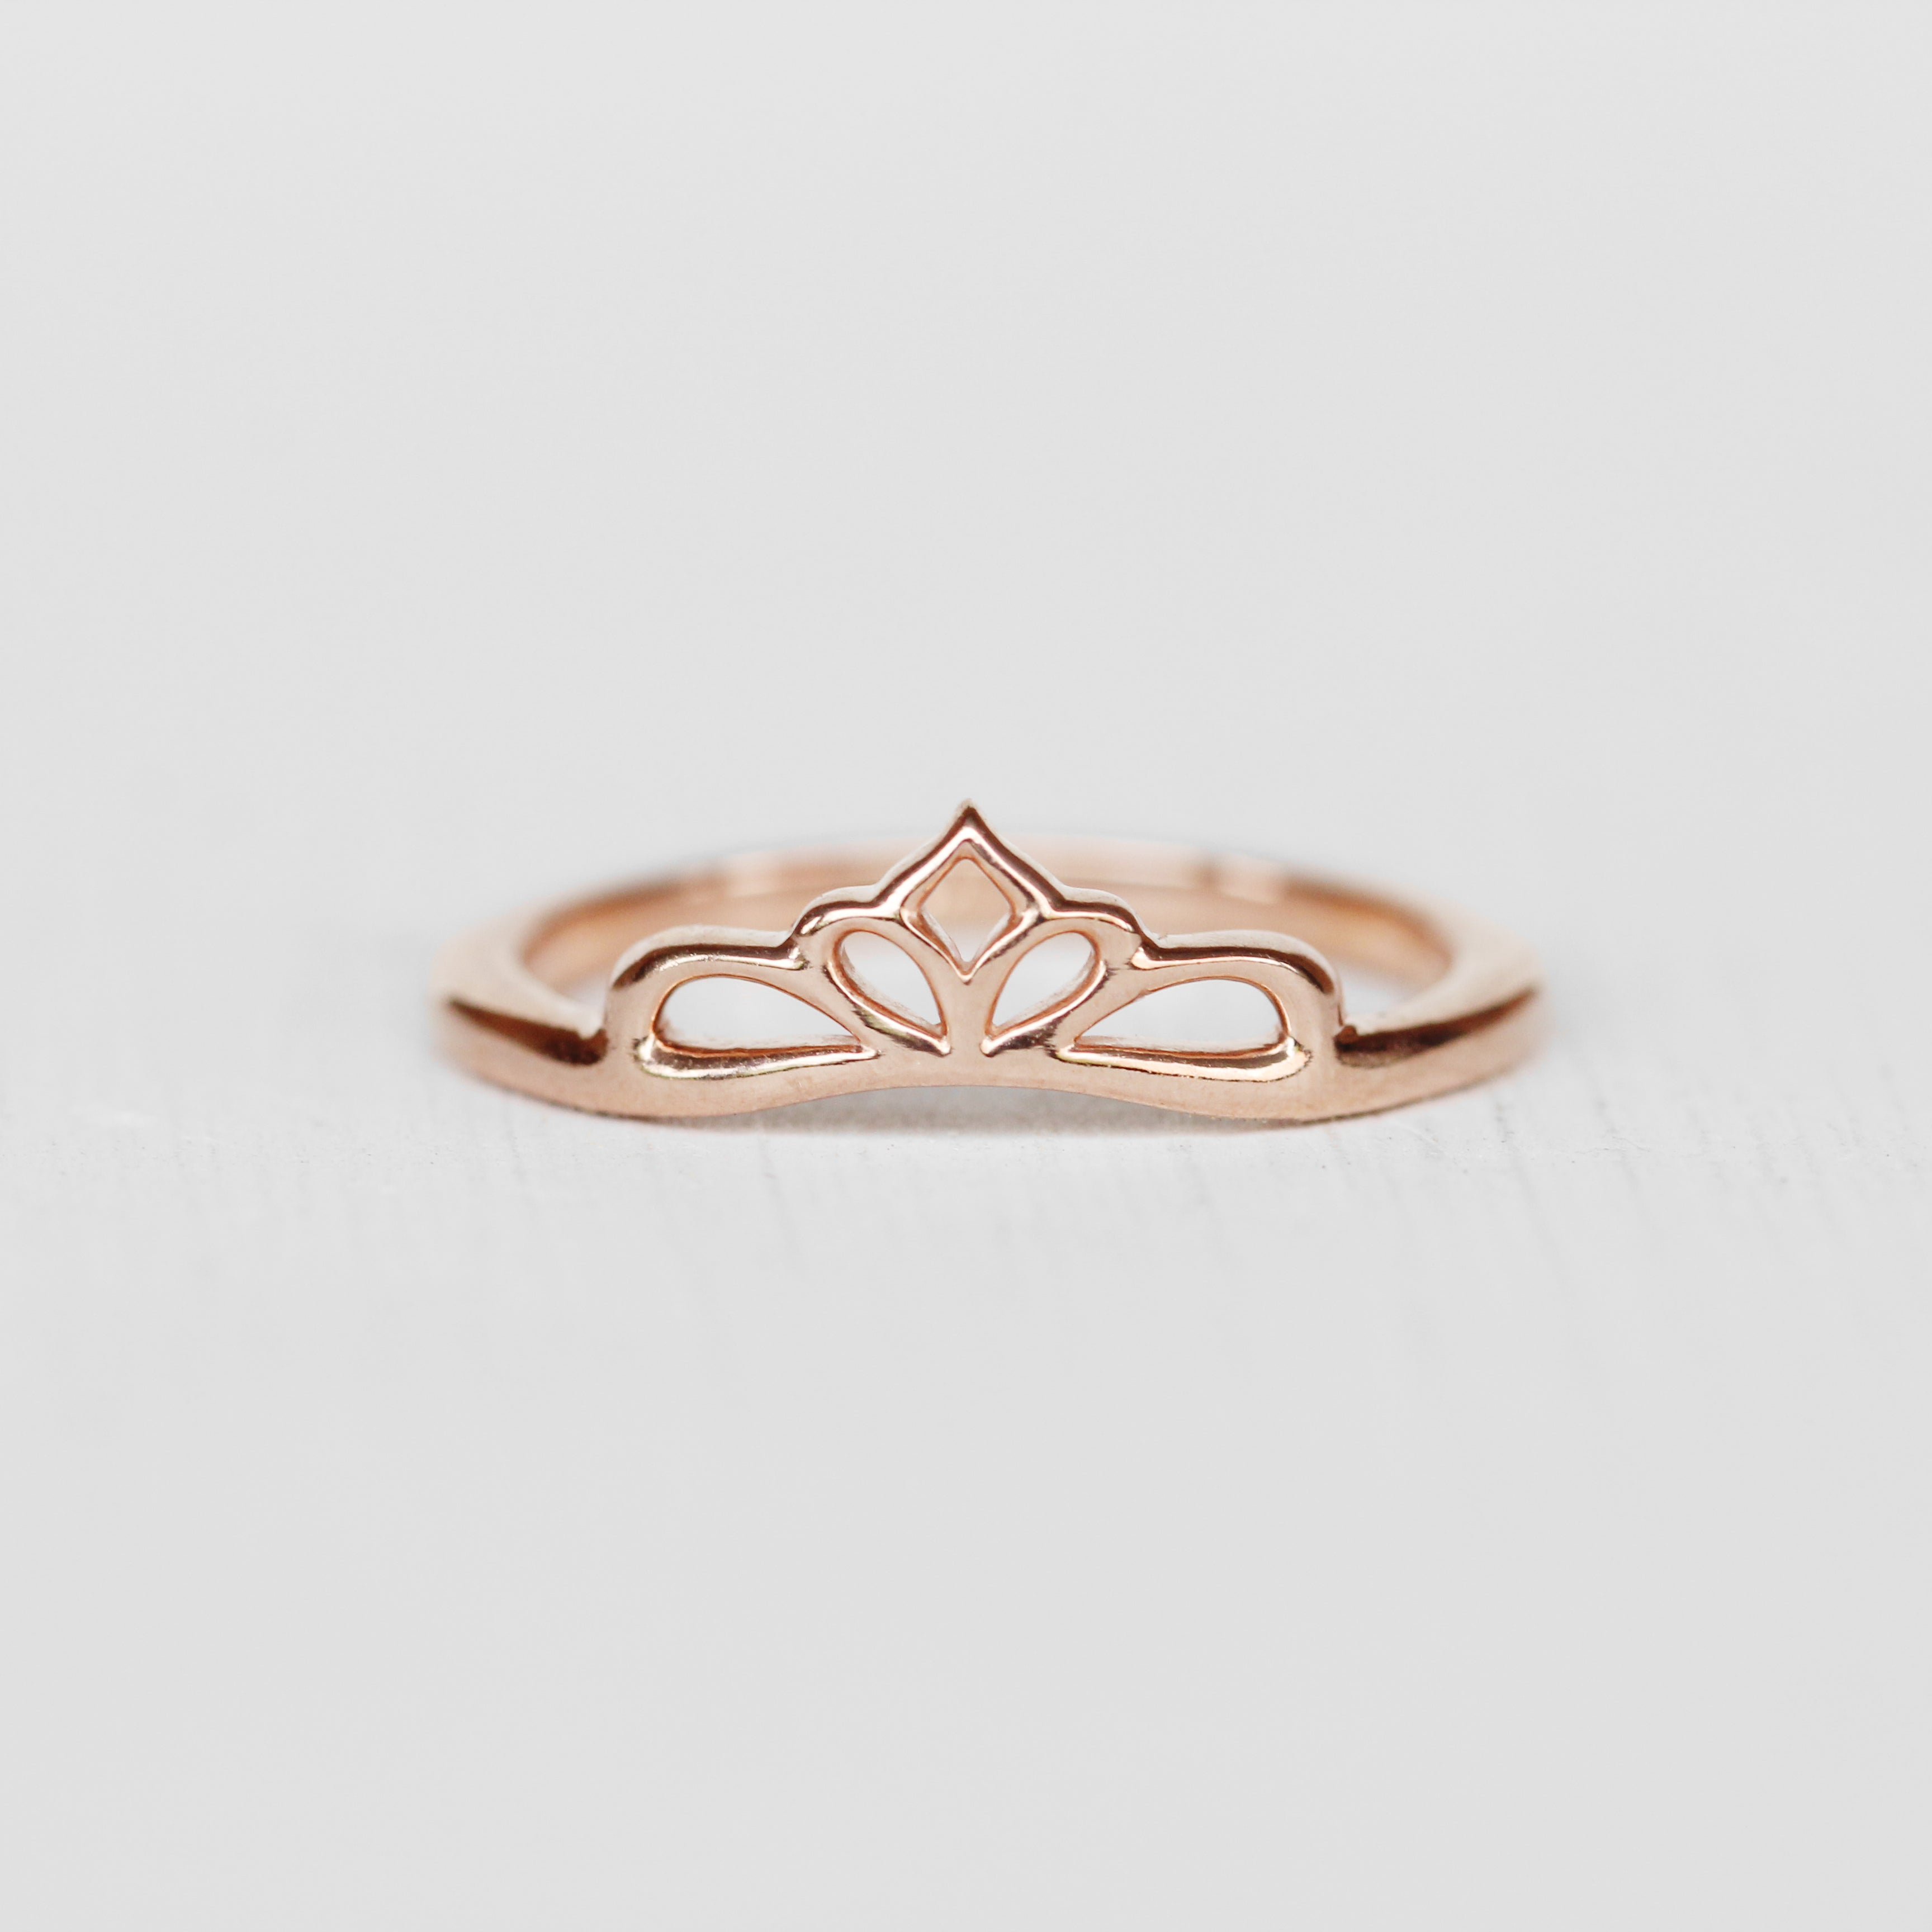 Liesbeth Ring -  Stackable band in 14k Gold - Made to Order - Celestial Diamonds ® by Midwinter Co.